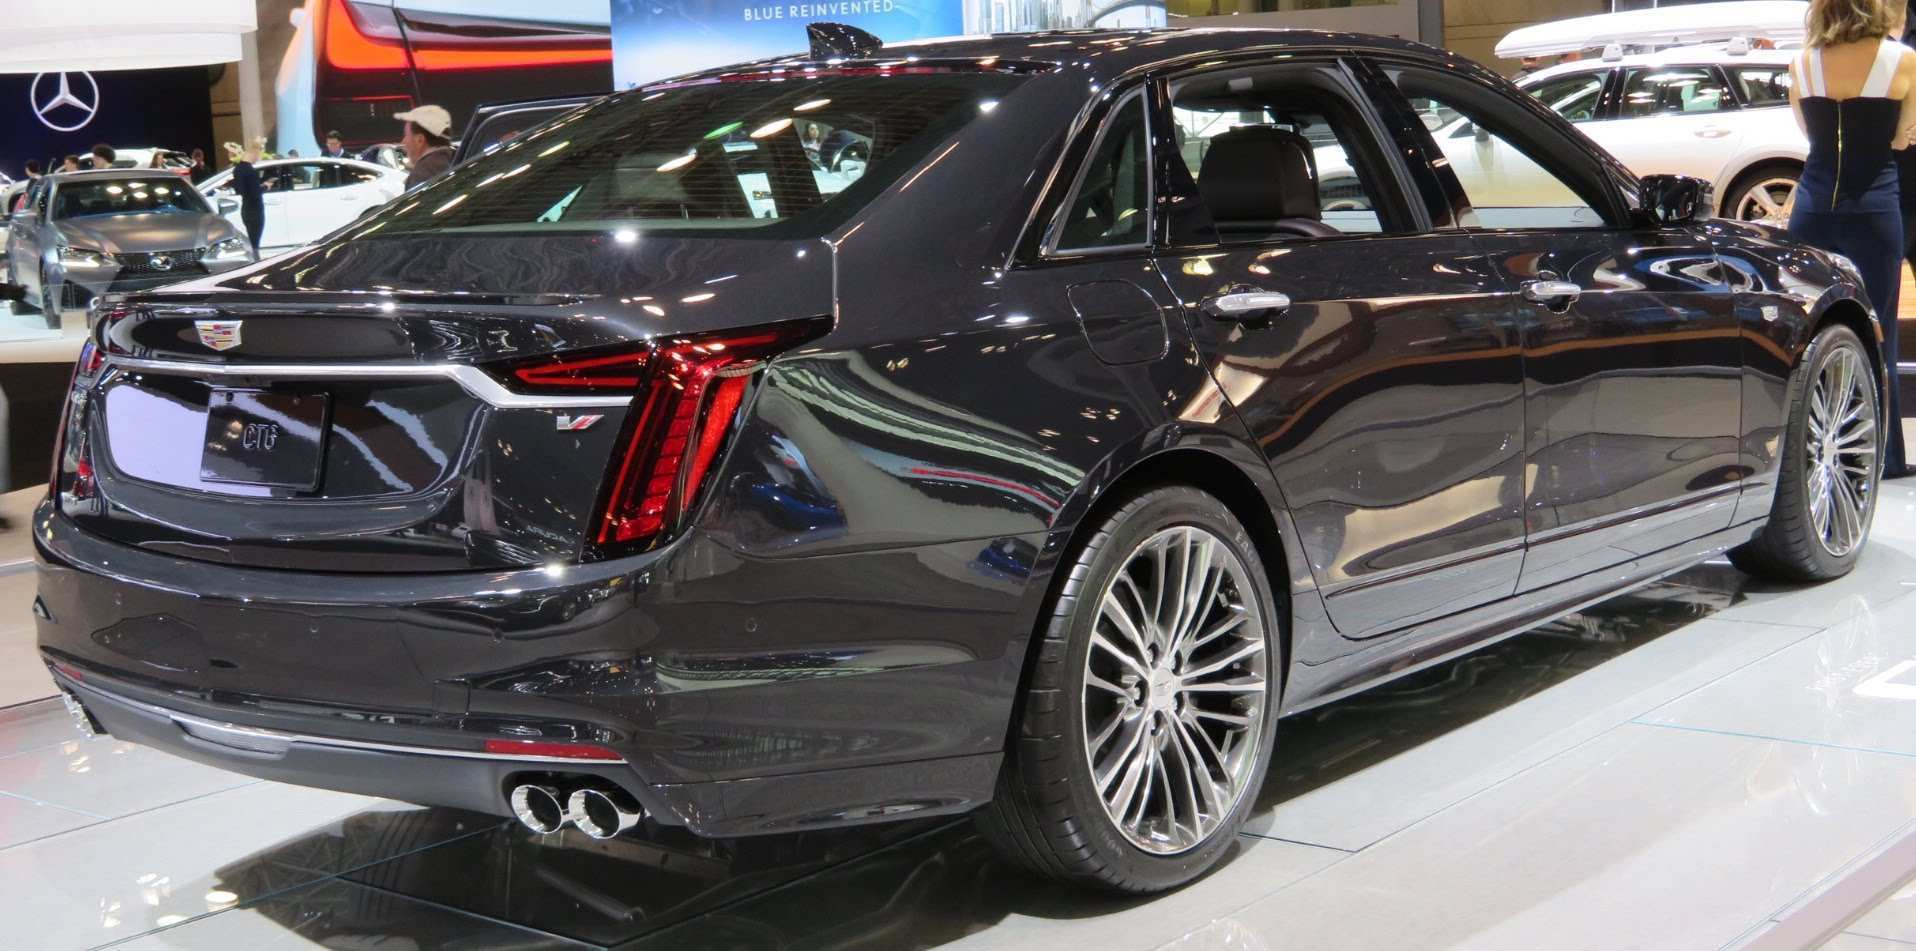 19 All New 2019 Cadillac CT6 Photos